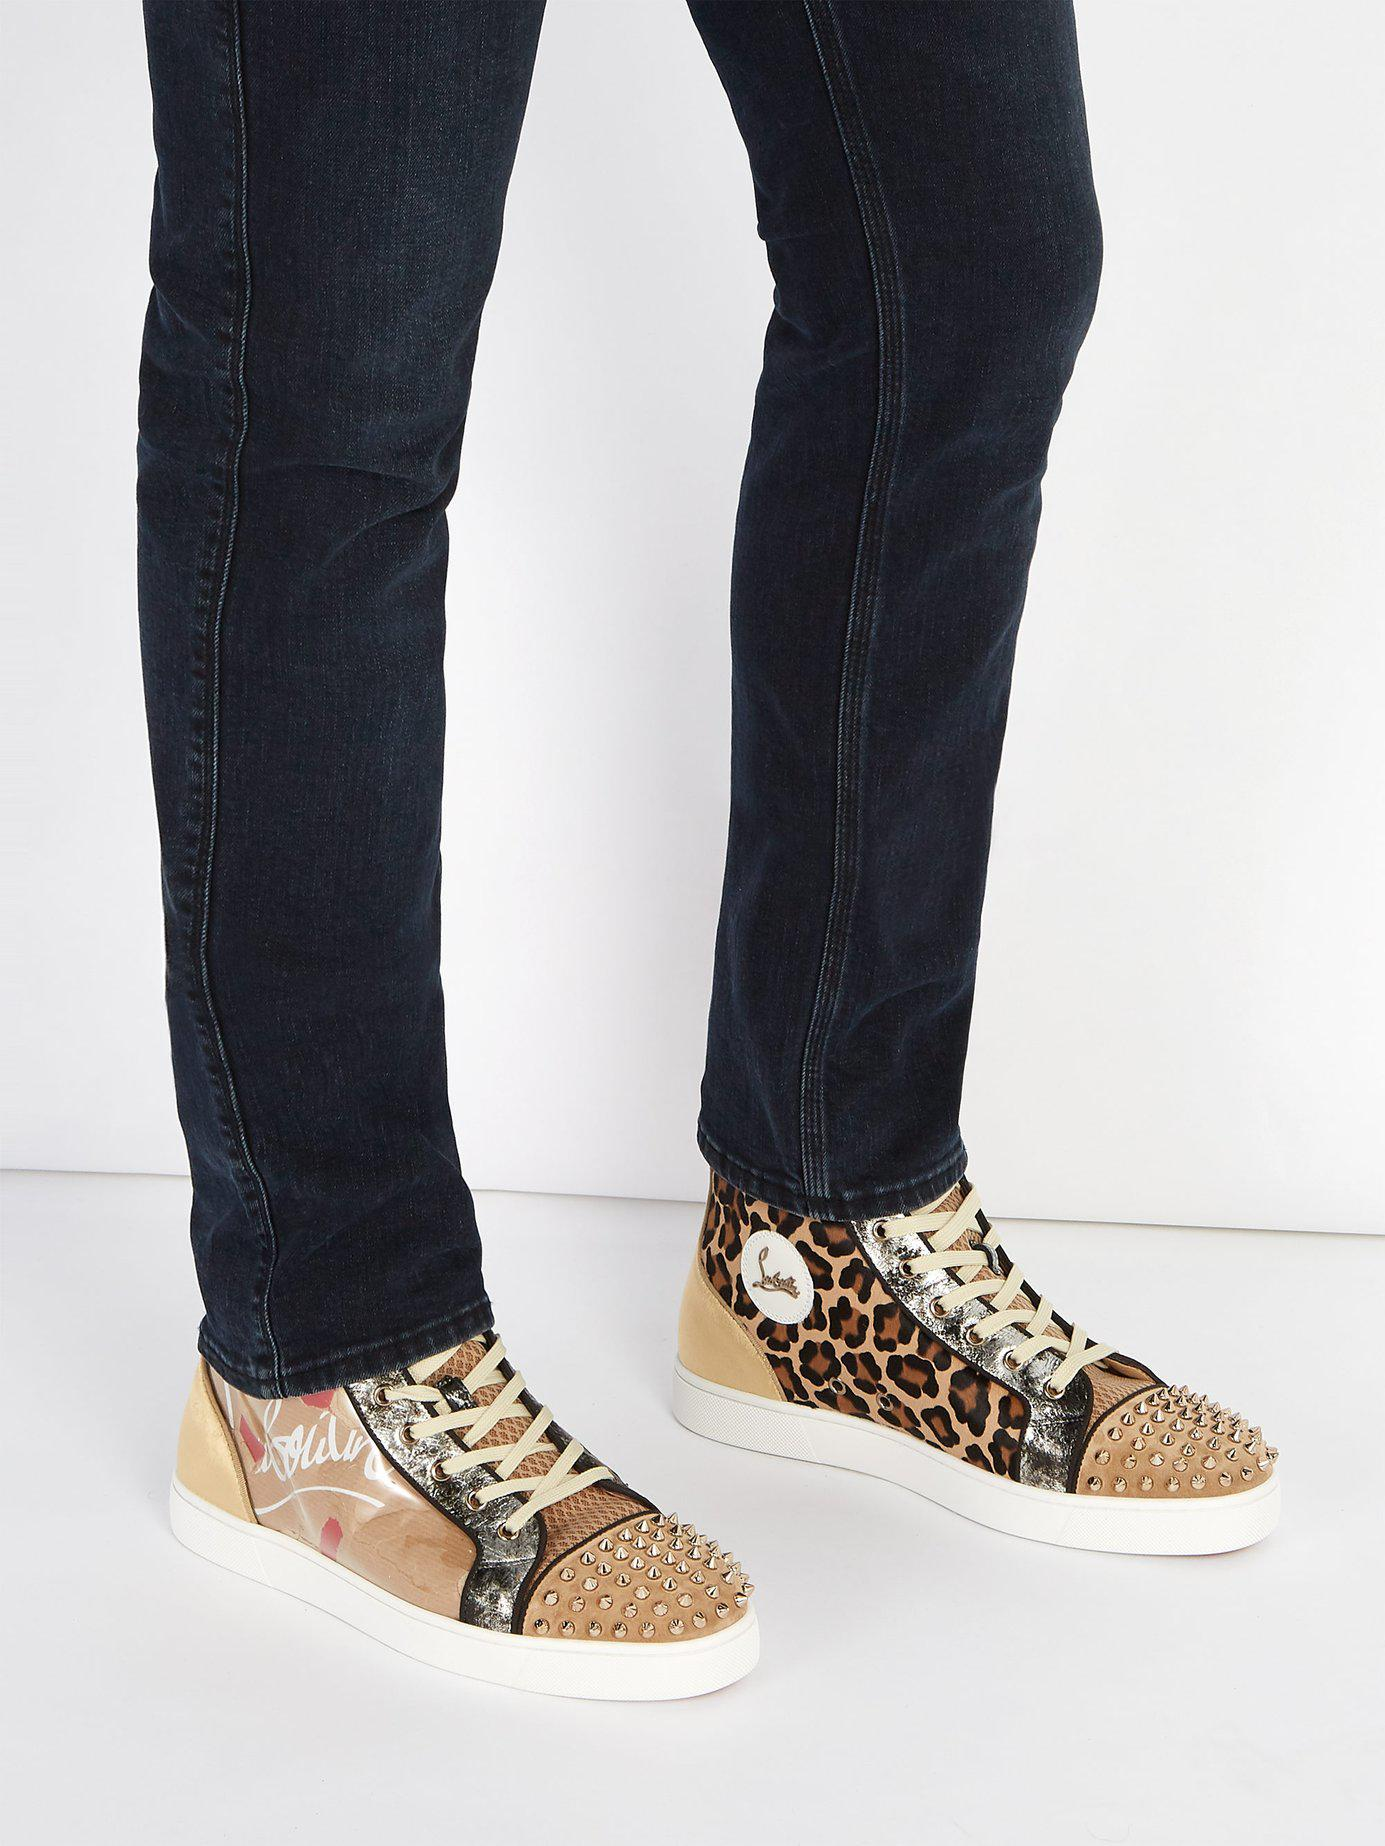 d21d877b8f88 Lyst - Christian Louboutin Louis Spike Embellished Kraft High Top Trainers  for Men